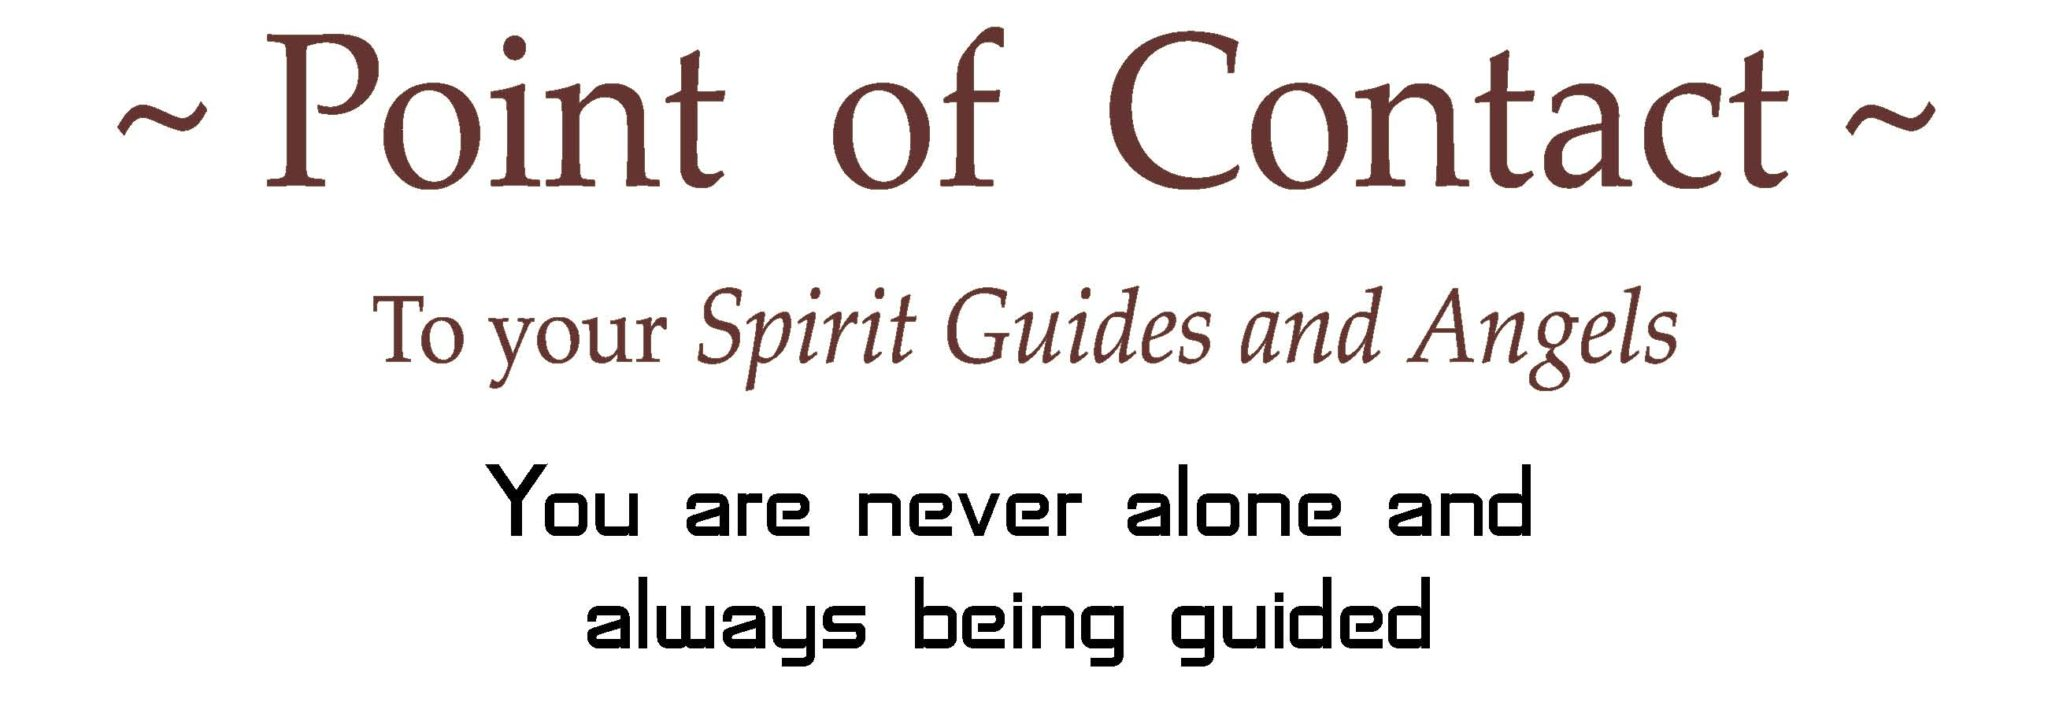 Point of Contact to your Spirit Guides and Angels - reminder that you are never alone and always being guided